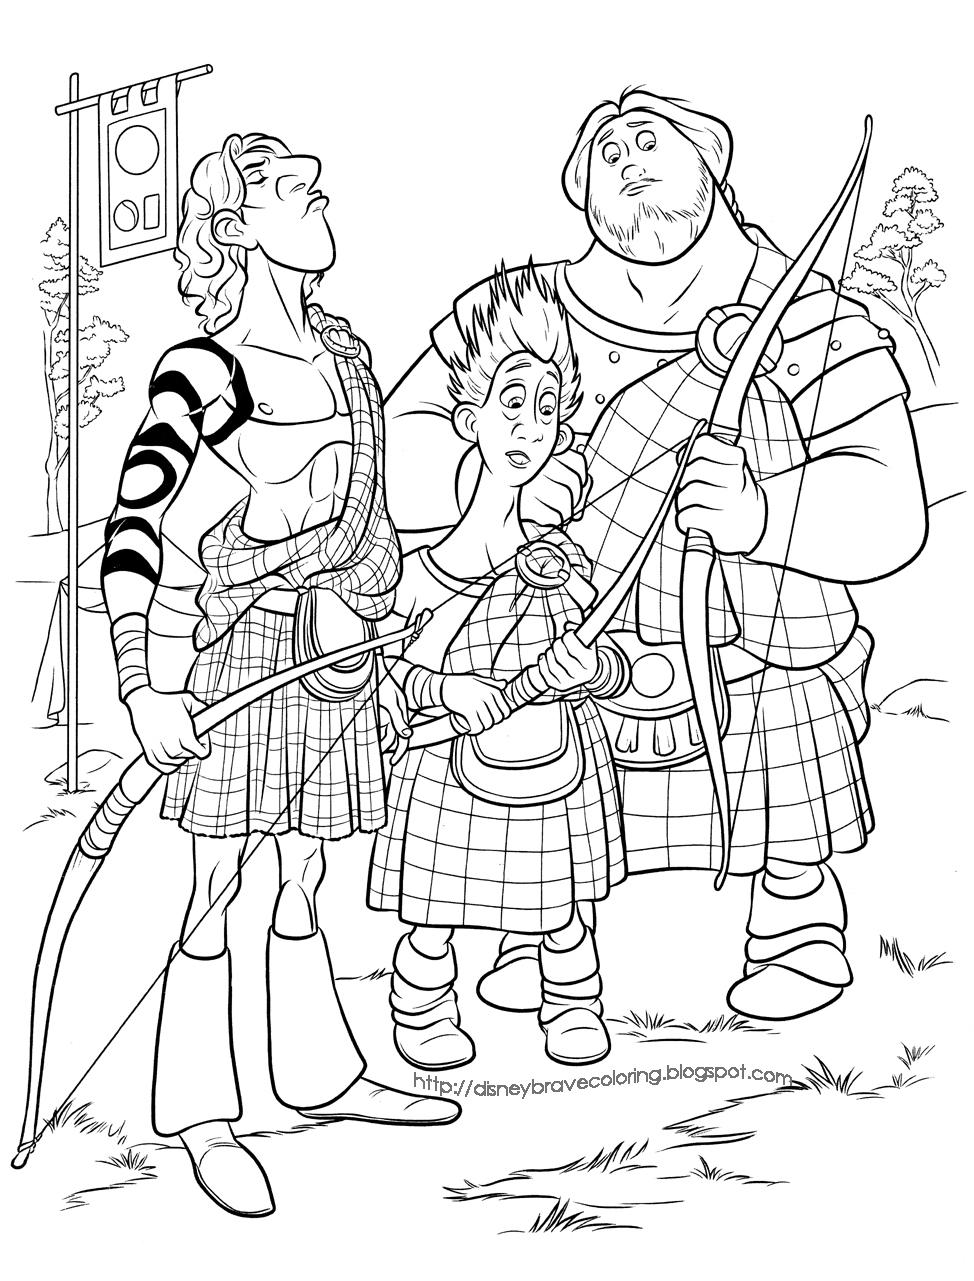 movie time coloring pages - photo #27